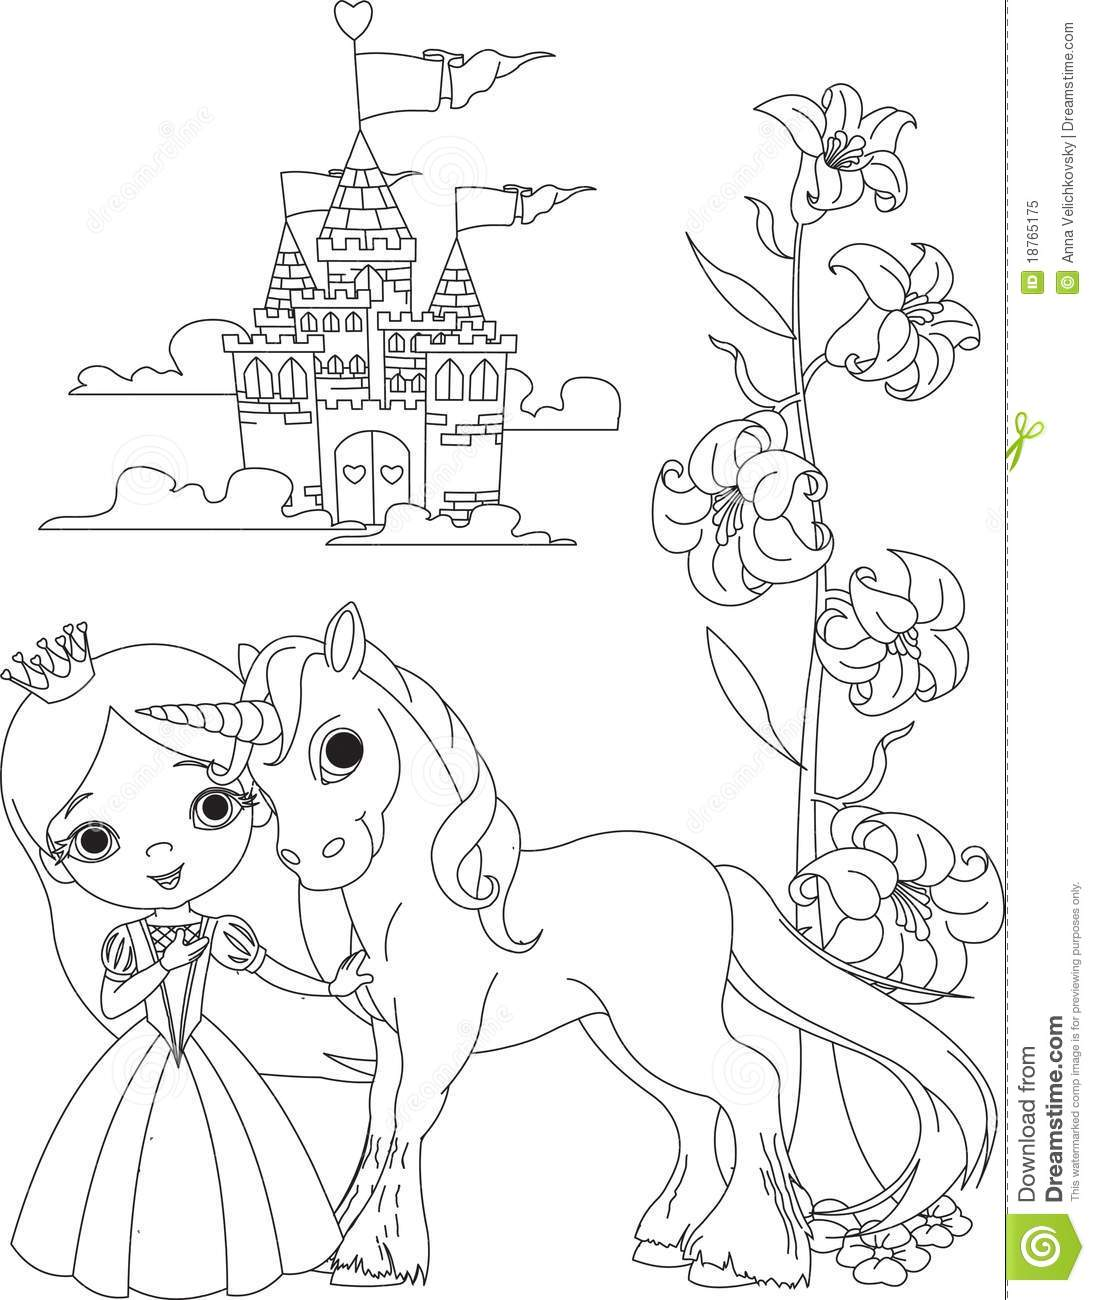 Fairy Unicorn Coloring Pages For Adults Coloring Pages